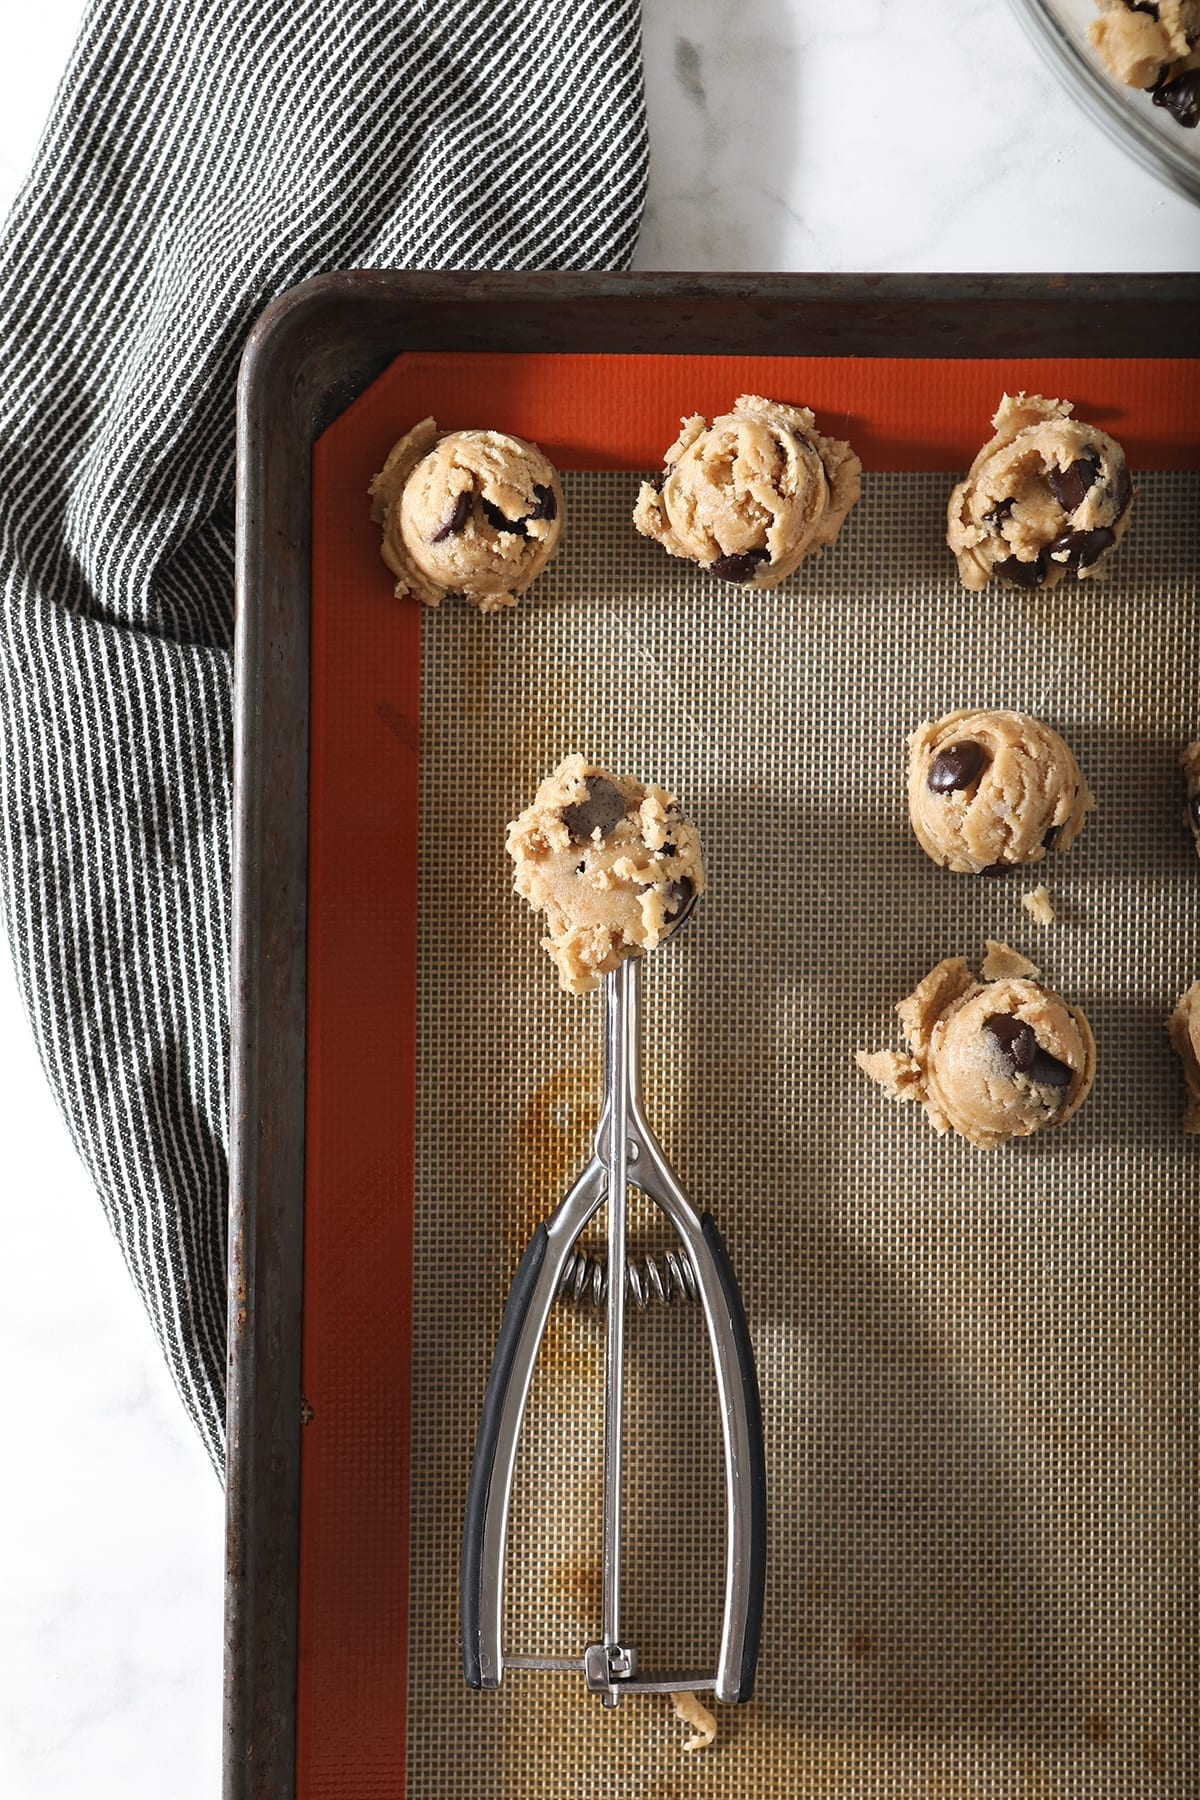 A cookie scoop has some cookie dough inside it, as it scoops cookies onto a prepared baking sheet